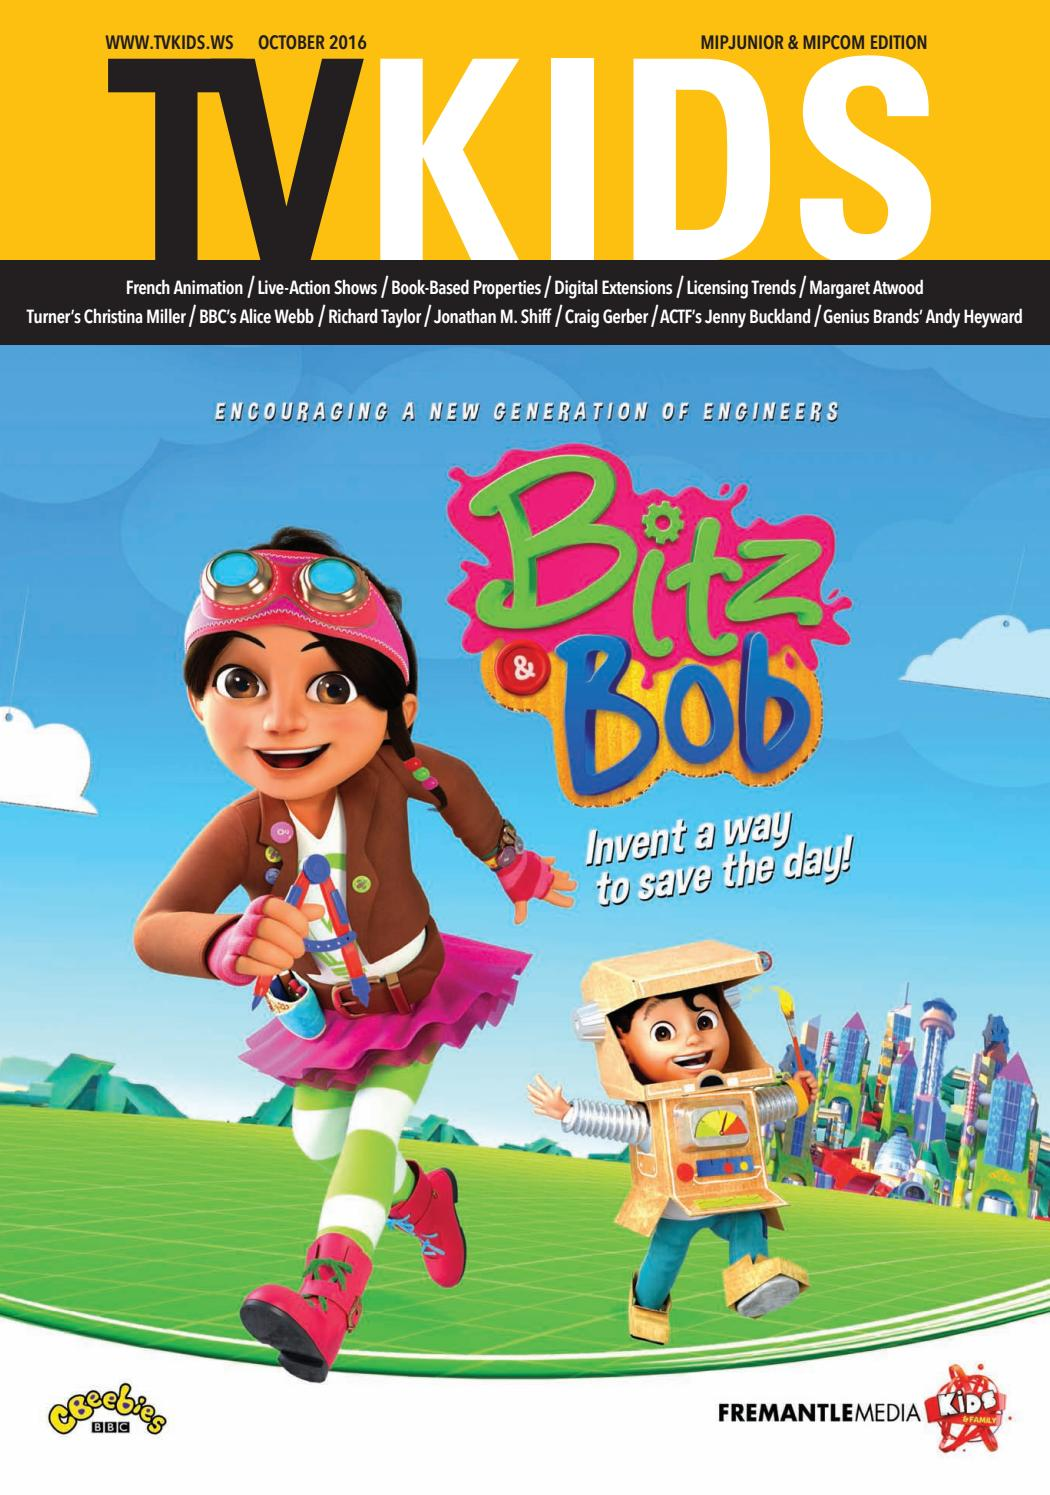 TV Kids MIPCOM 2016 by World Screen - issuu